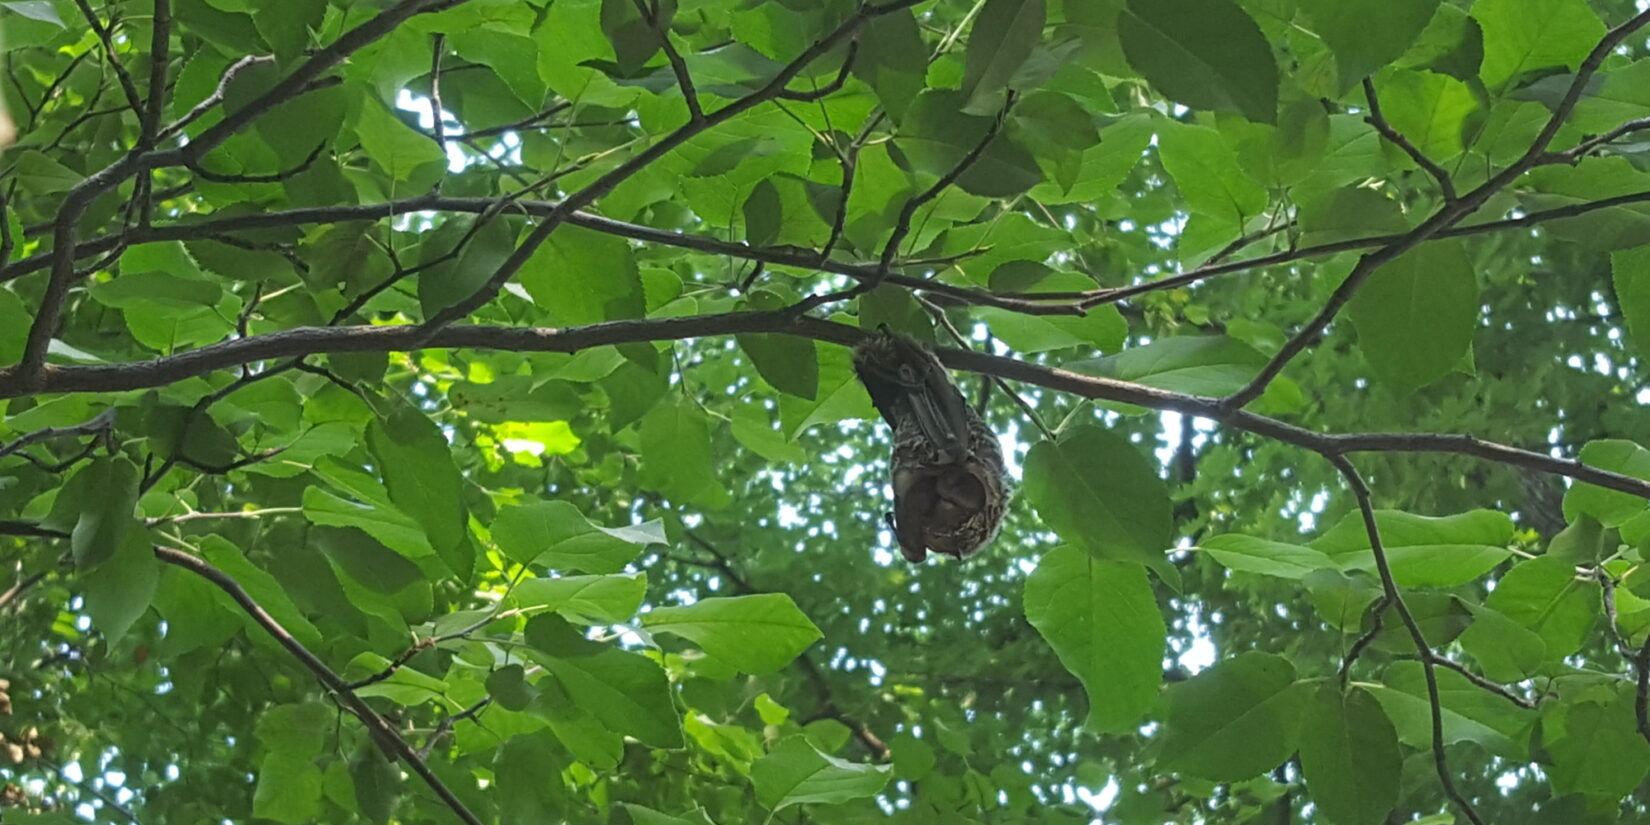 A hoary bat hanging from a branch beneath a canopy of green leaves